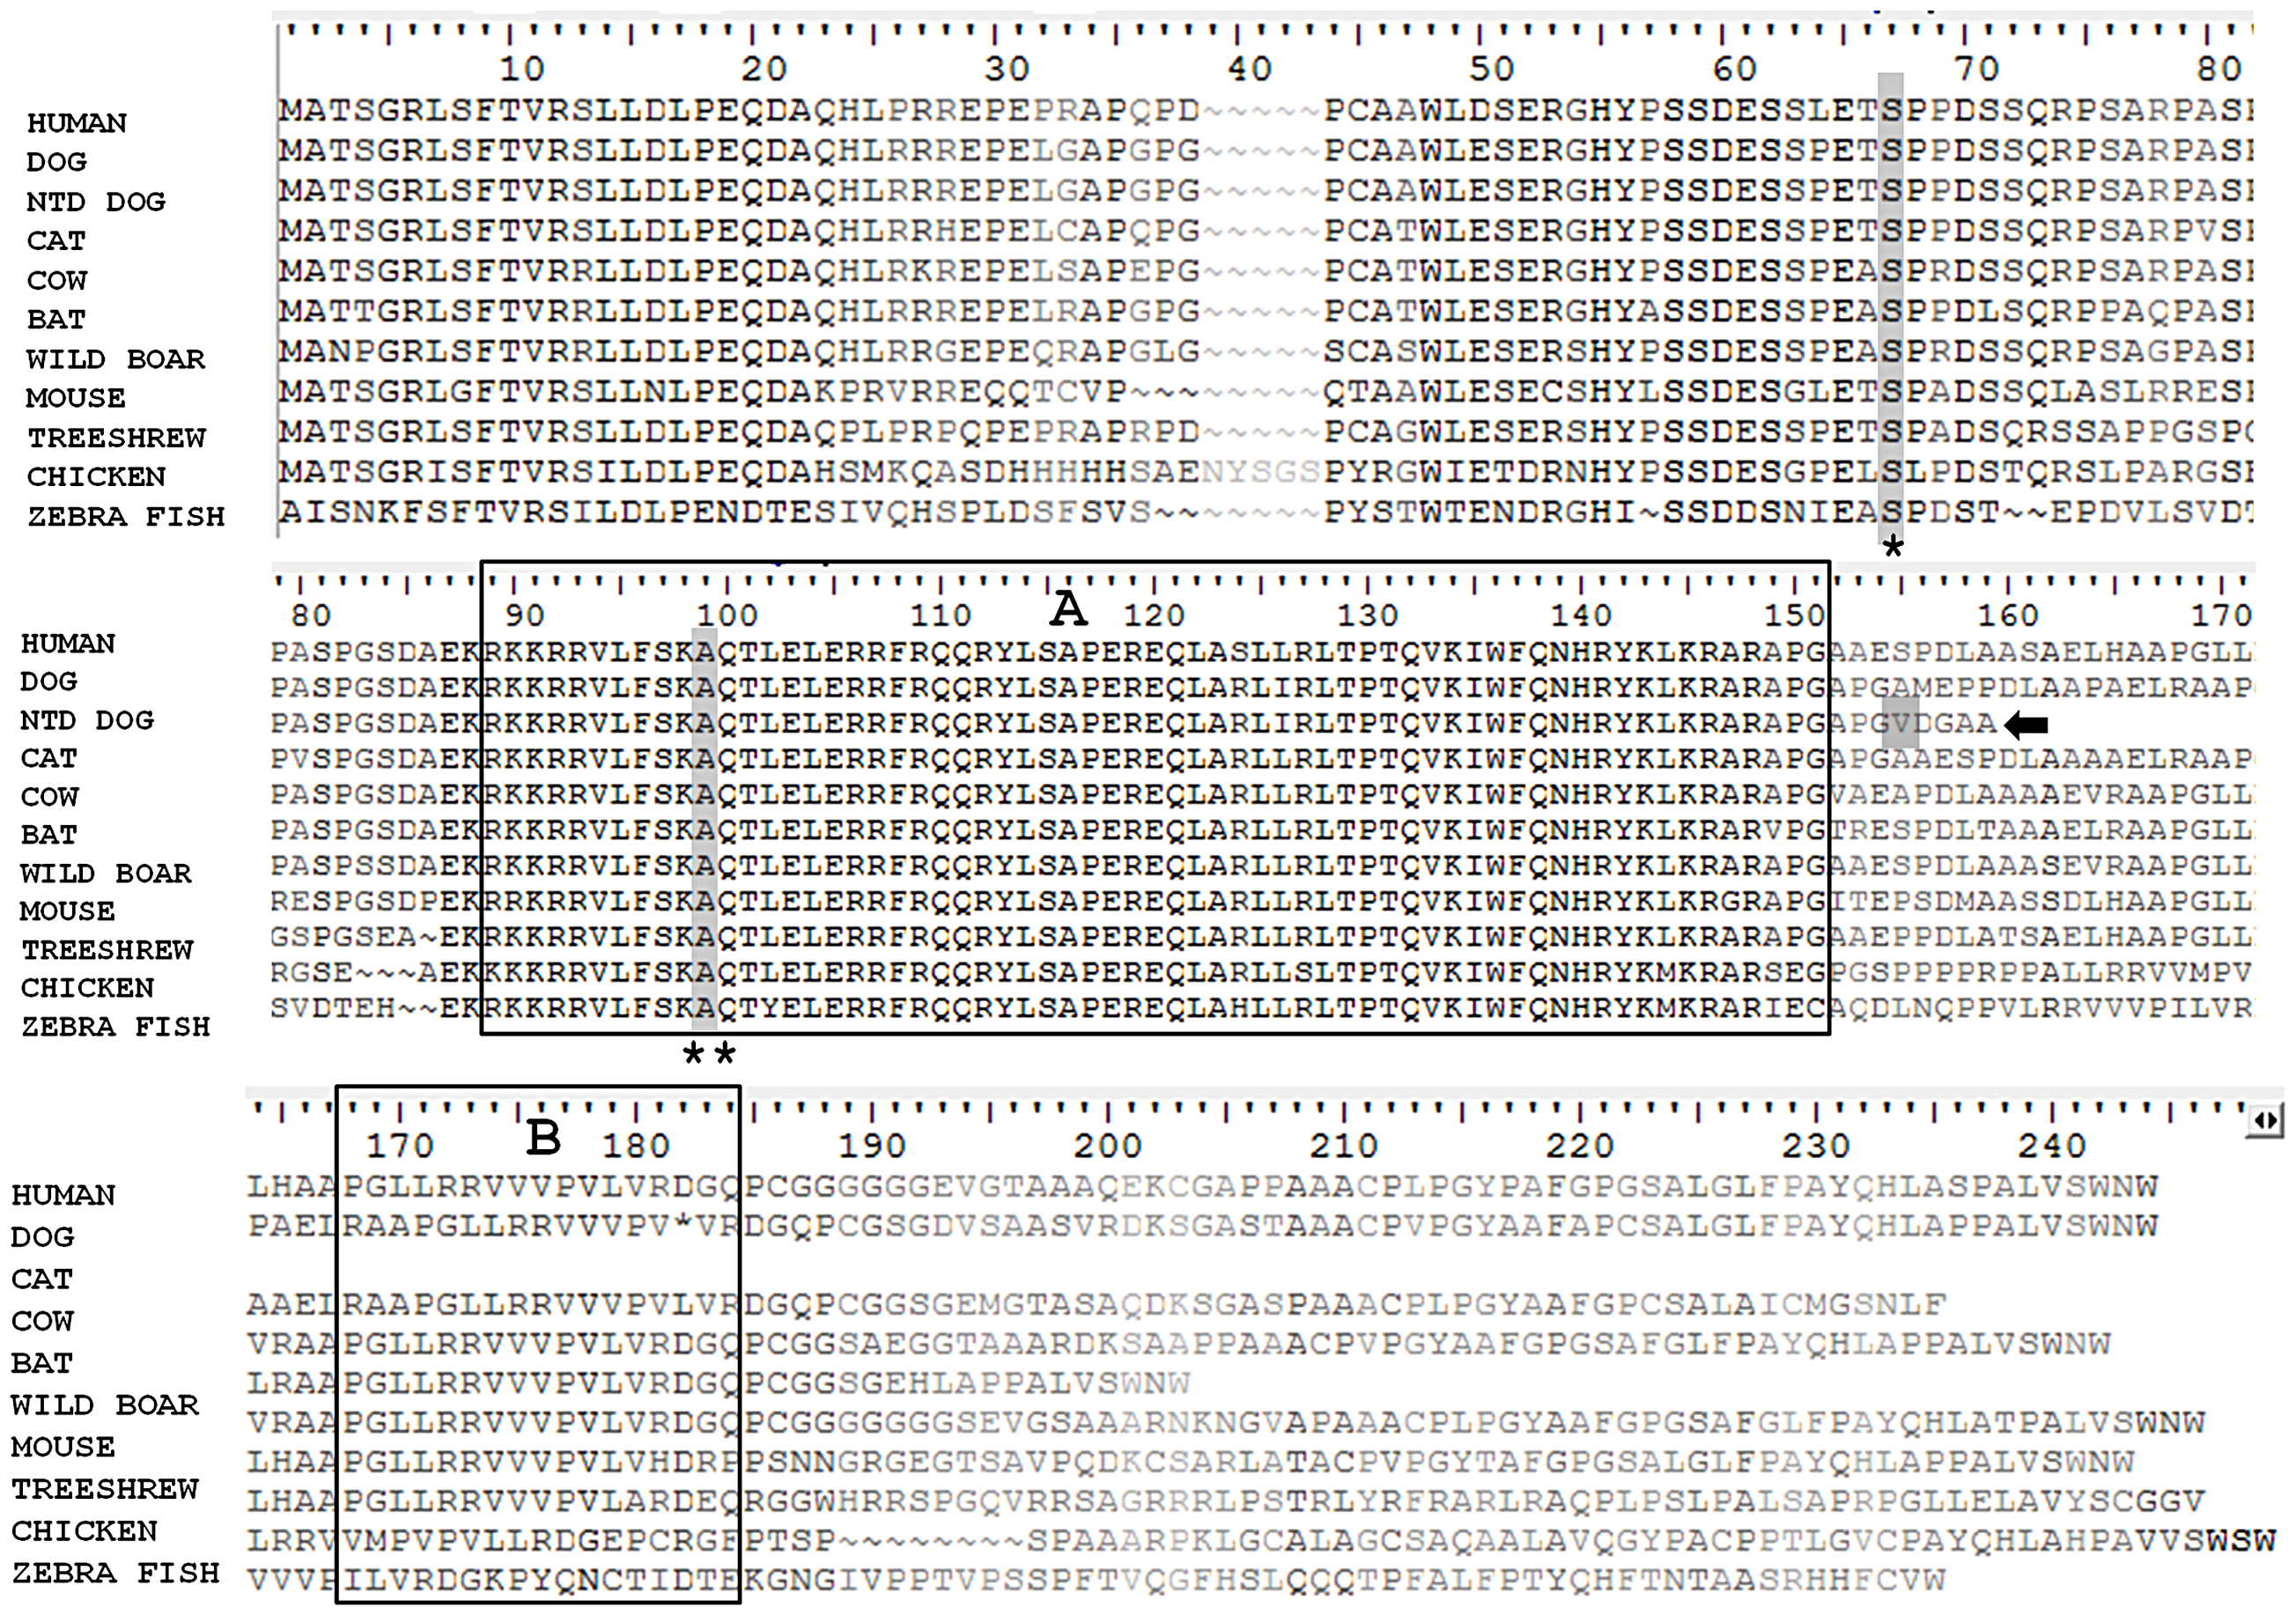 Comparison of the protein sequence of <i>NKX2-8</i> between human, unaffected dog, spinal dysraphism Weimaraner, cat, cow, bat, wild boar, mouse, tree-shrew, chicken and zebra fish.